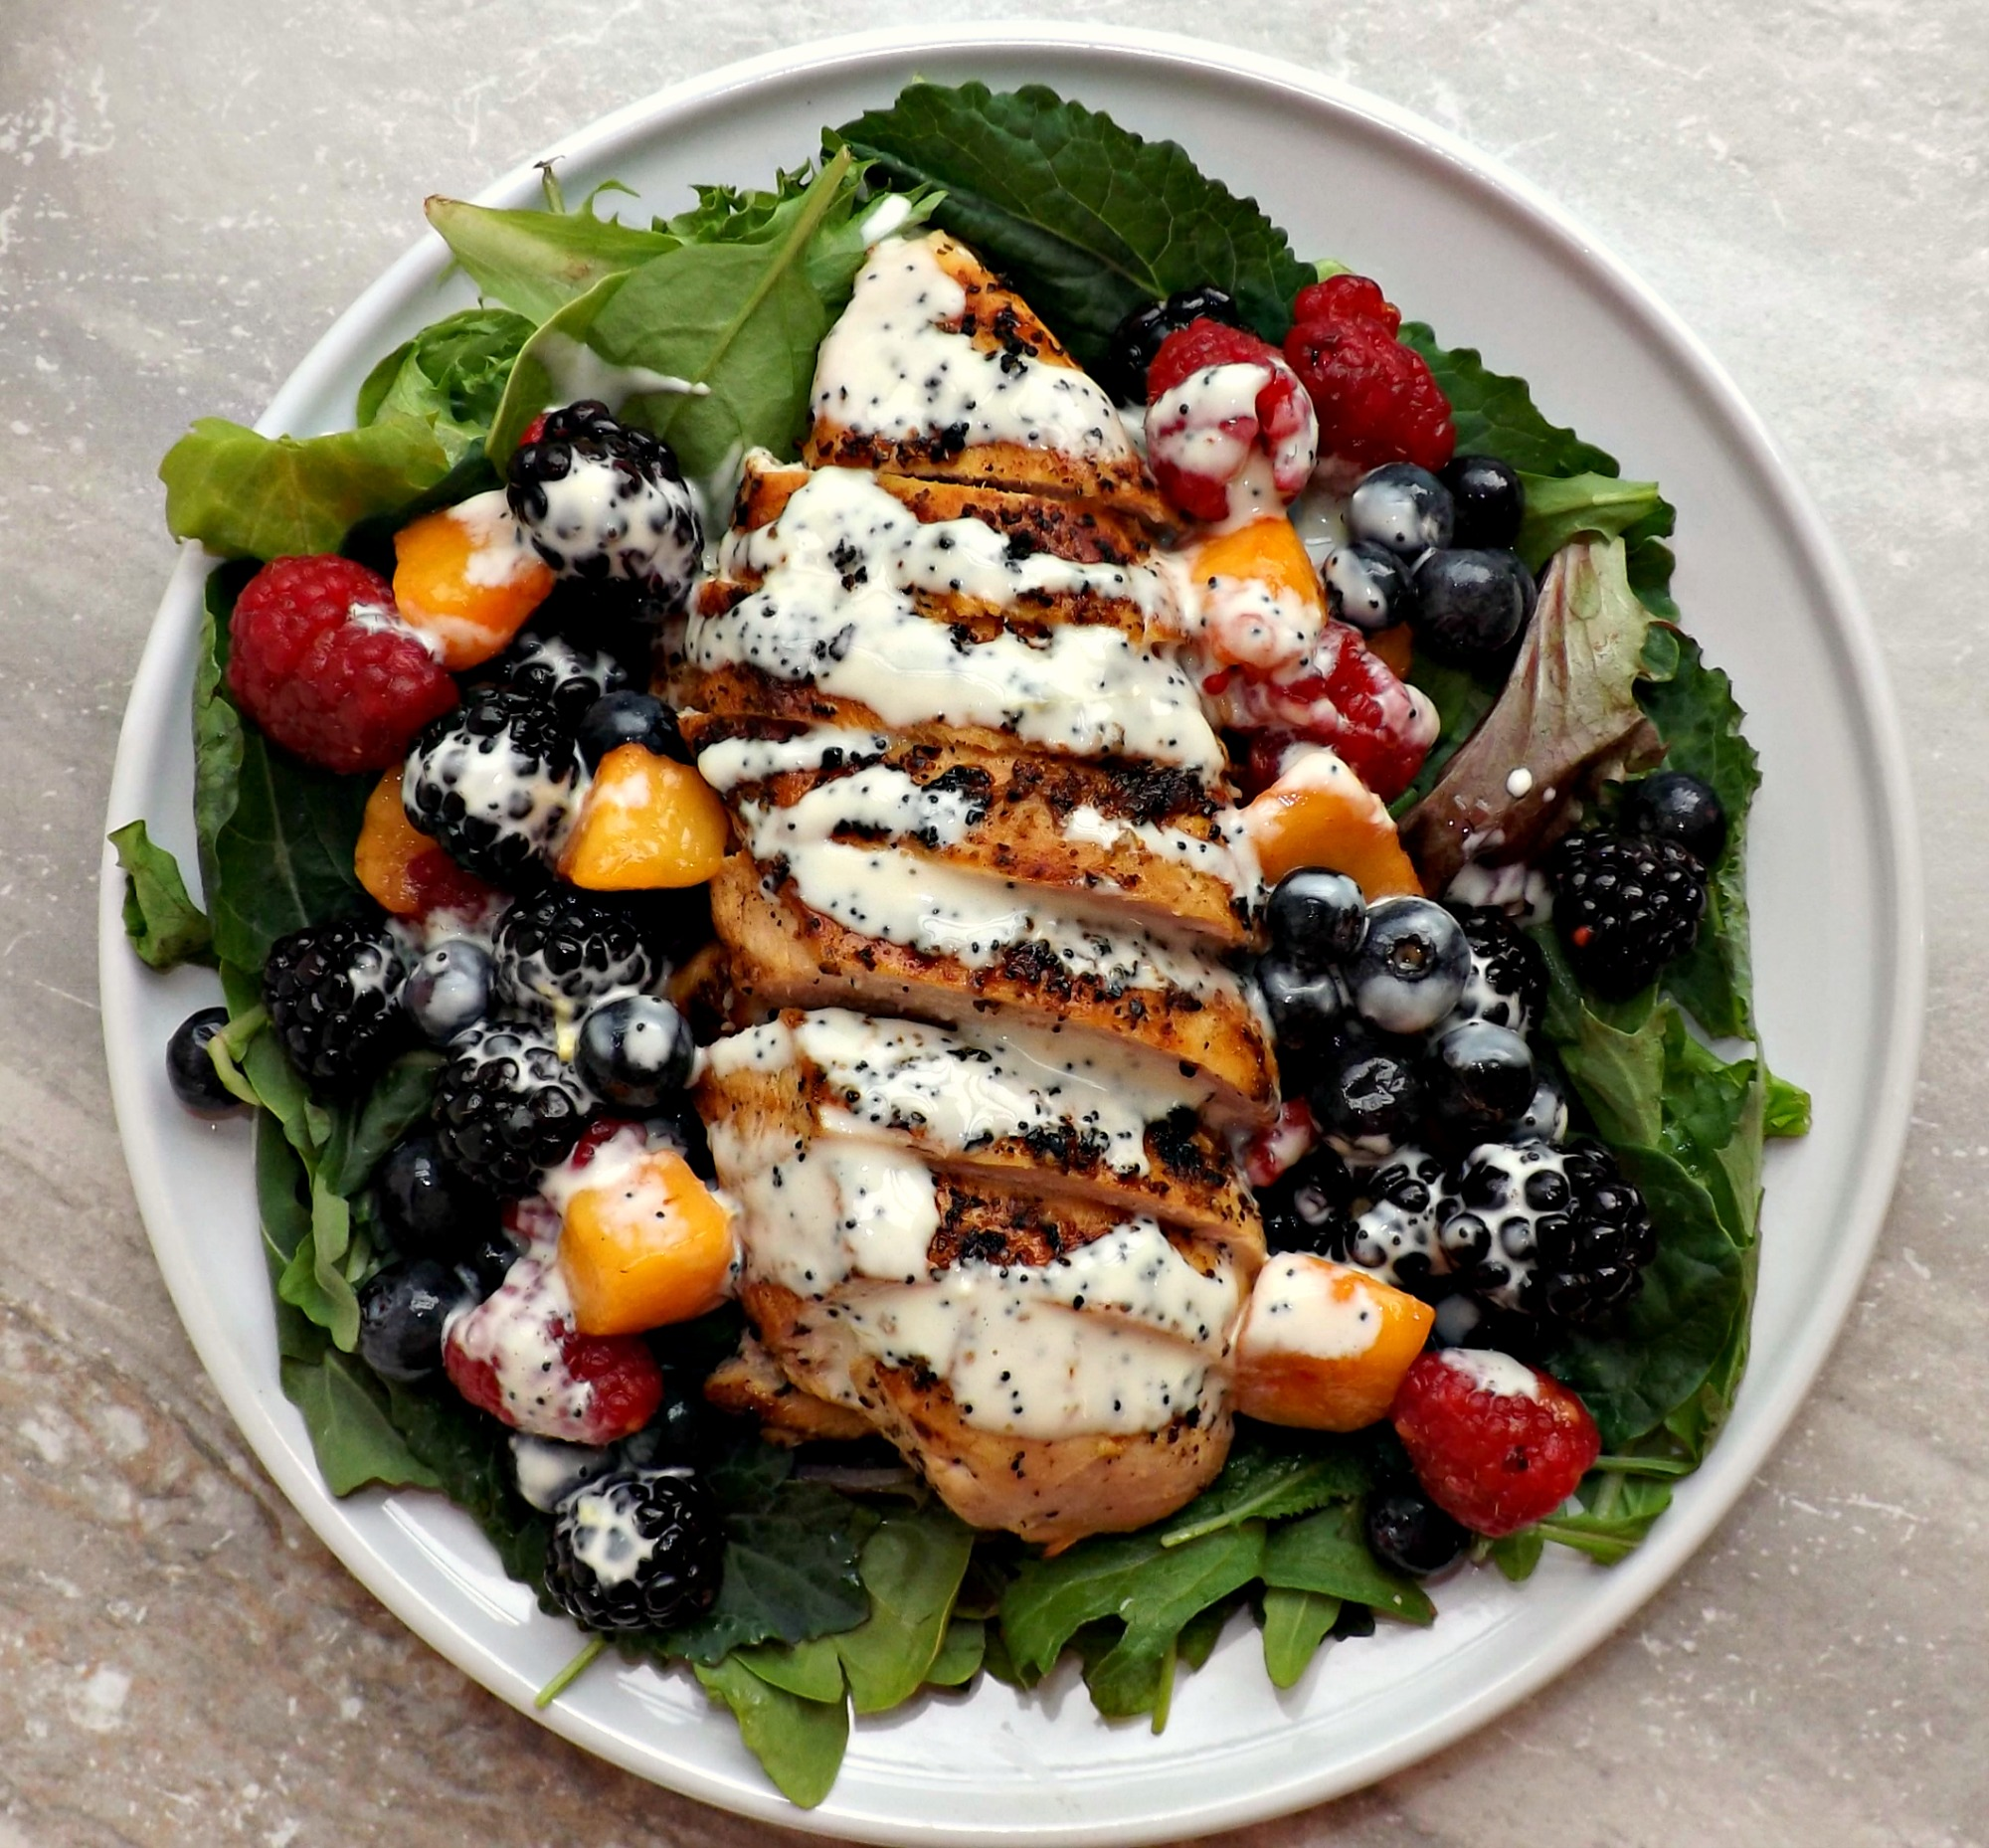 Red, White & Blue Grilled Chicken Salad With Lemon Poppyseed Dressing 5